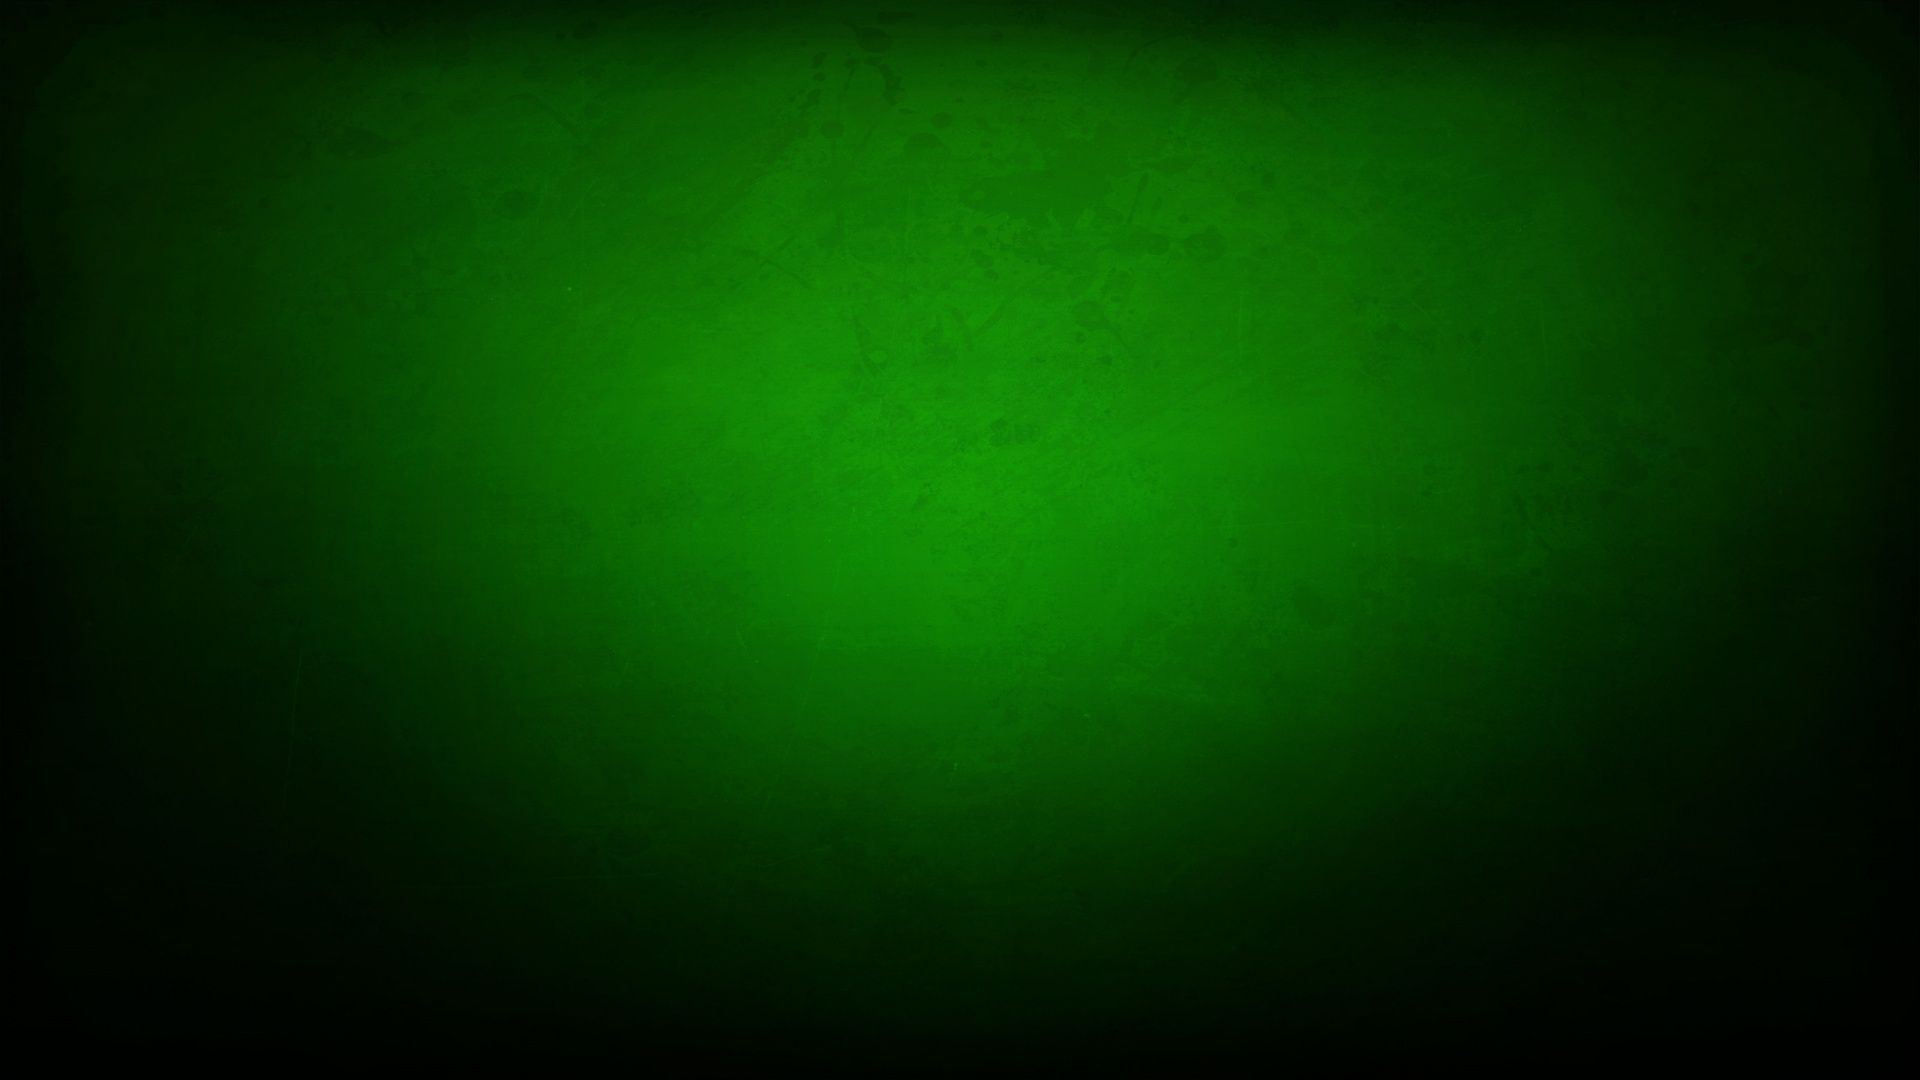 Green Background 003 Hd